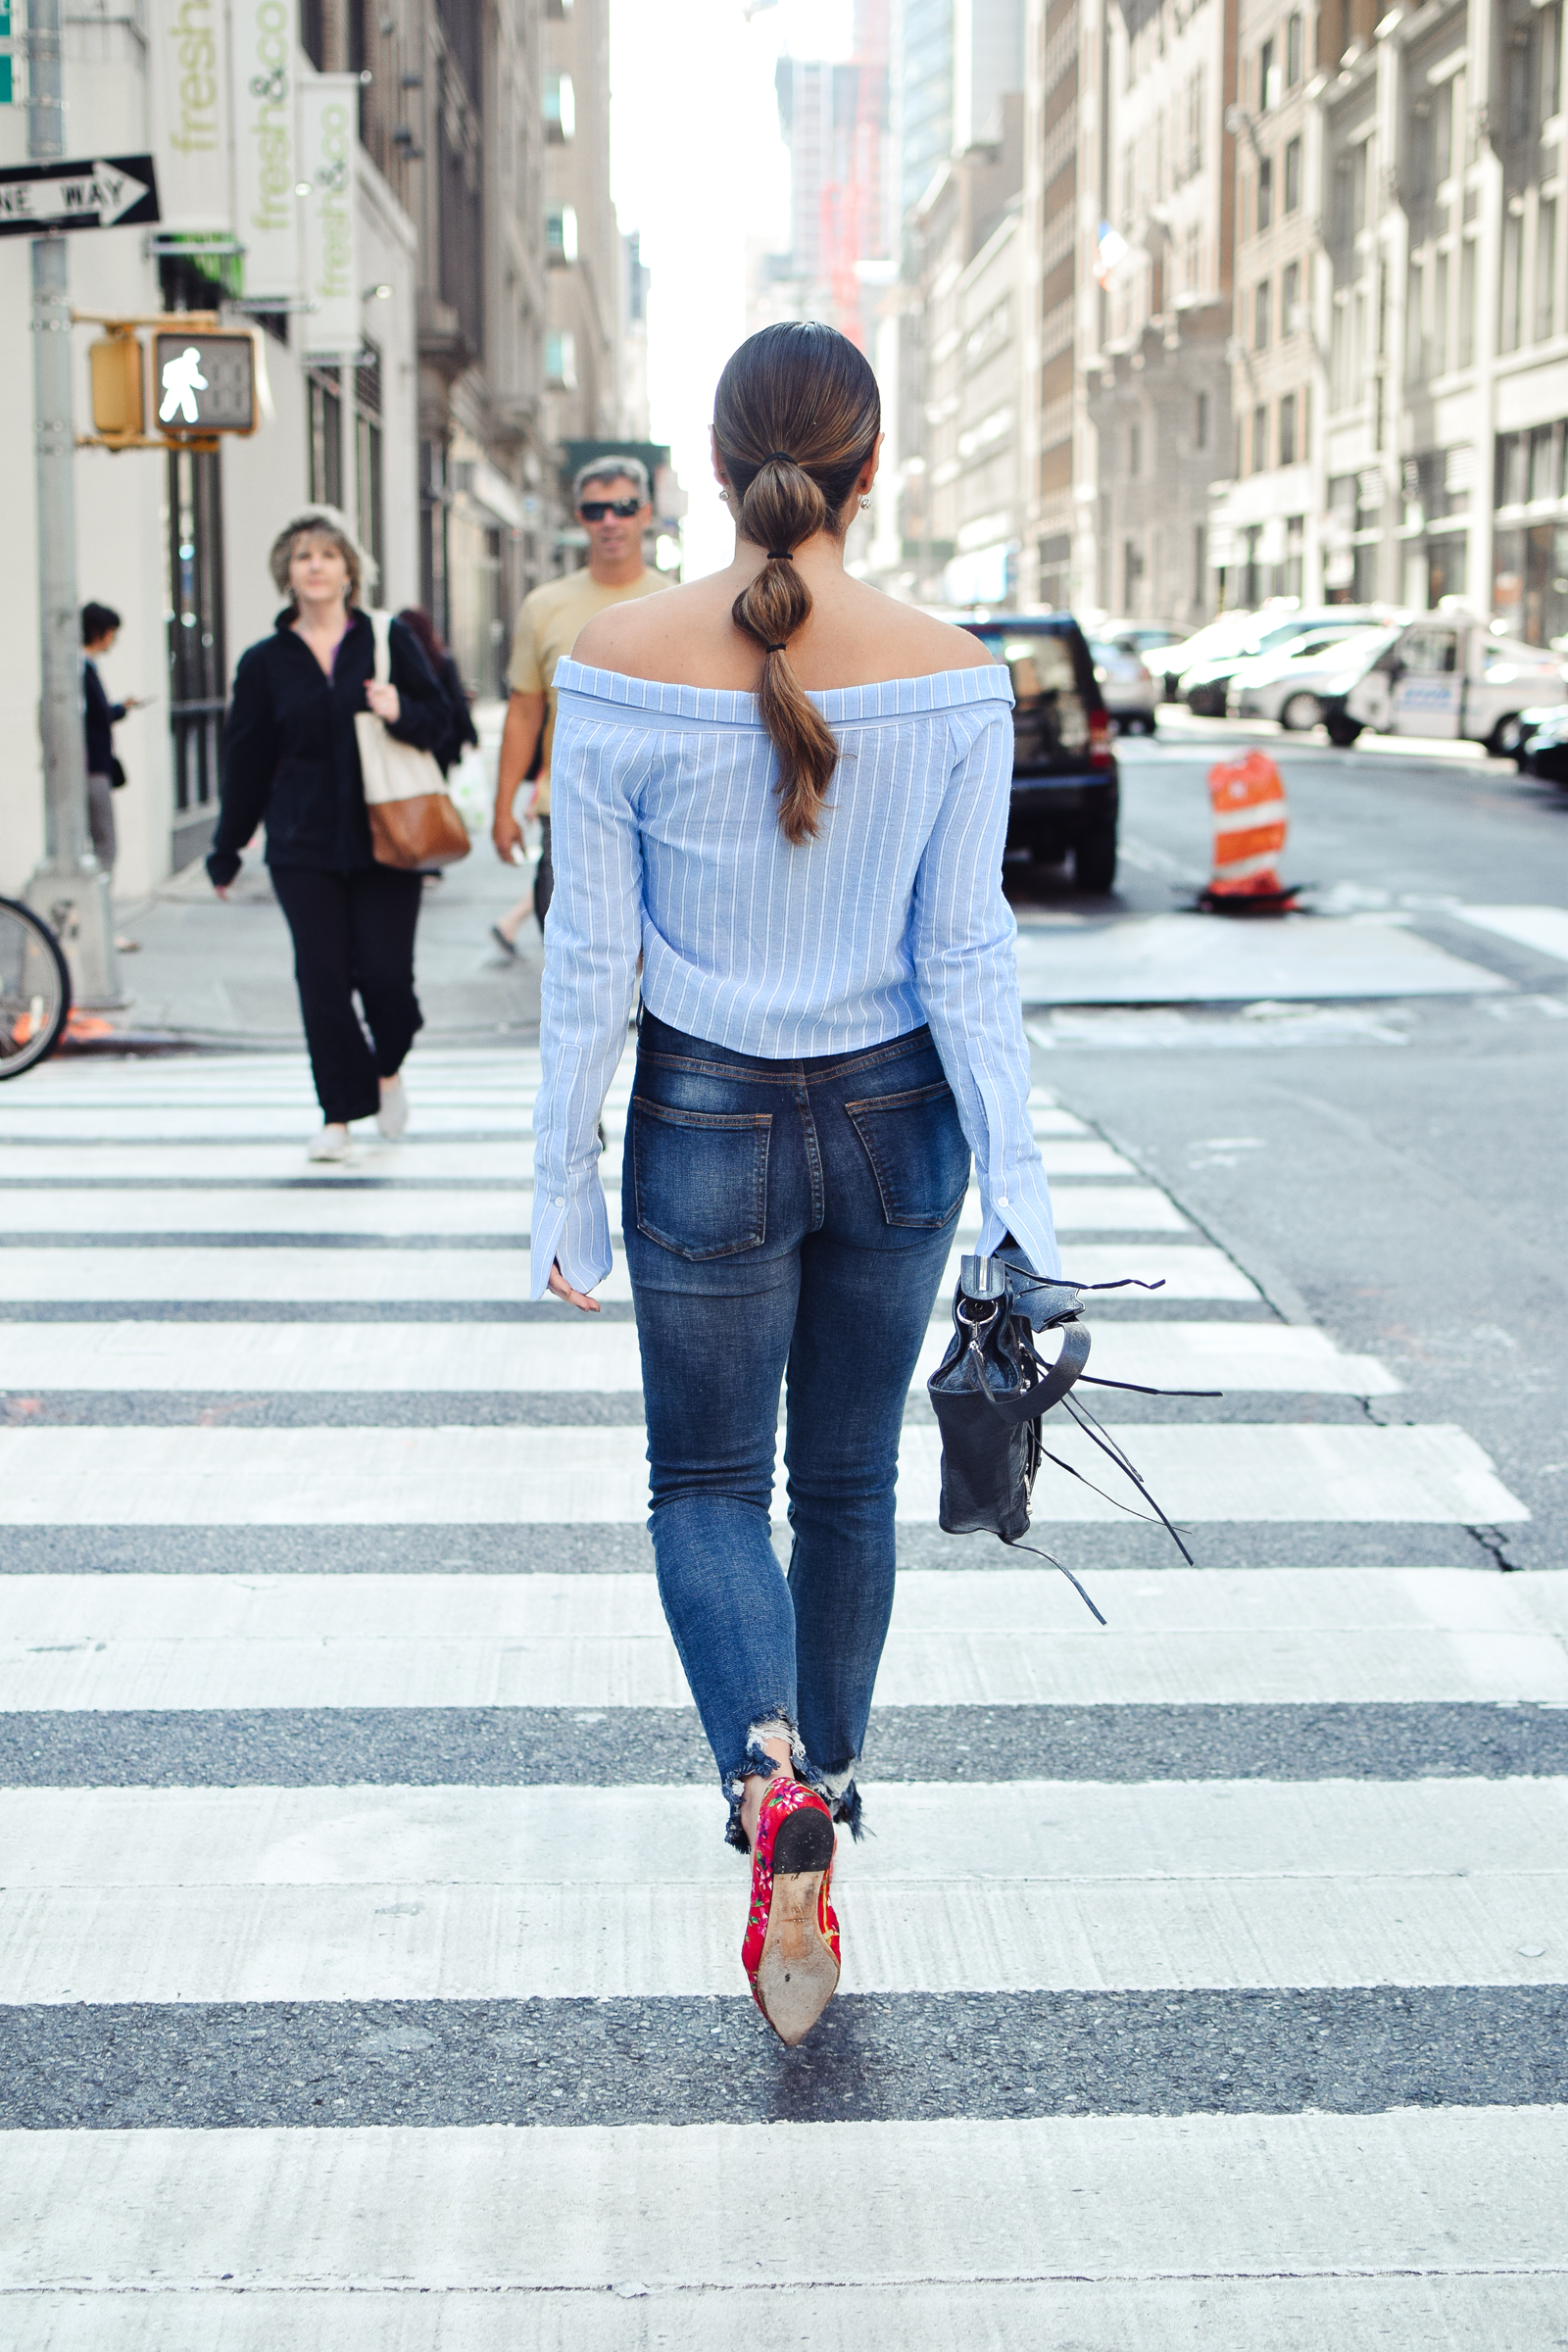 tobi-off-shoulder-striped-top-jeans-casual-outfit-nyc